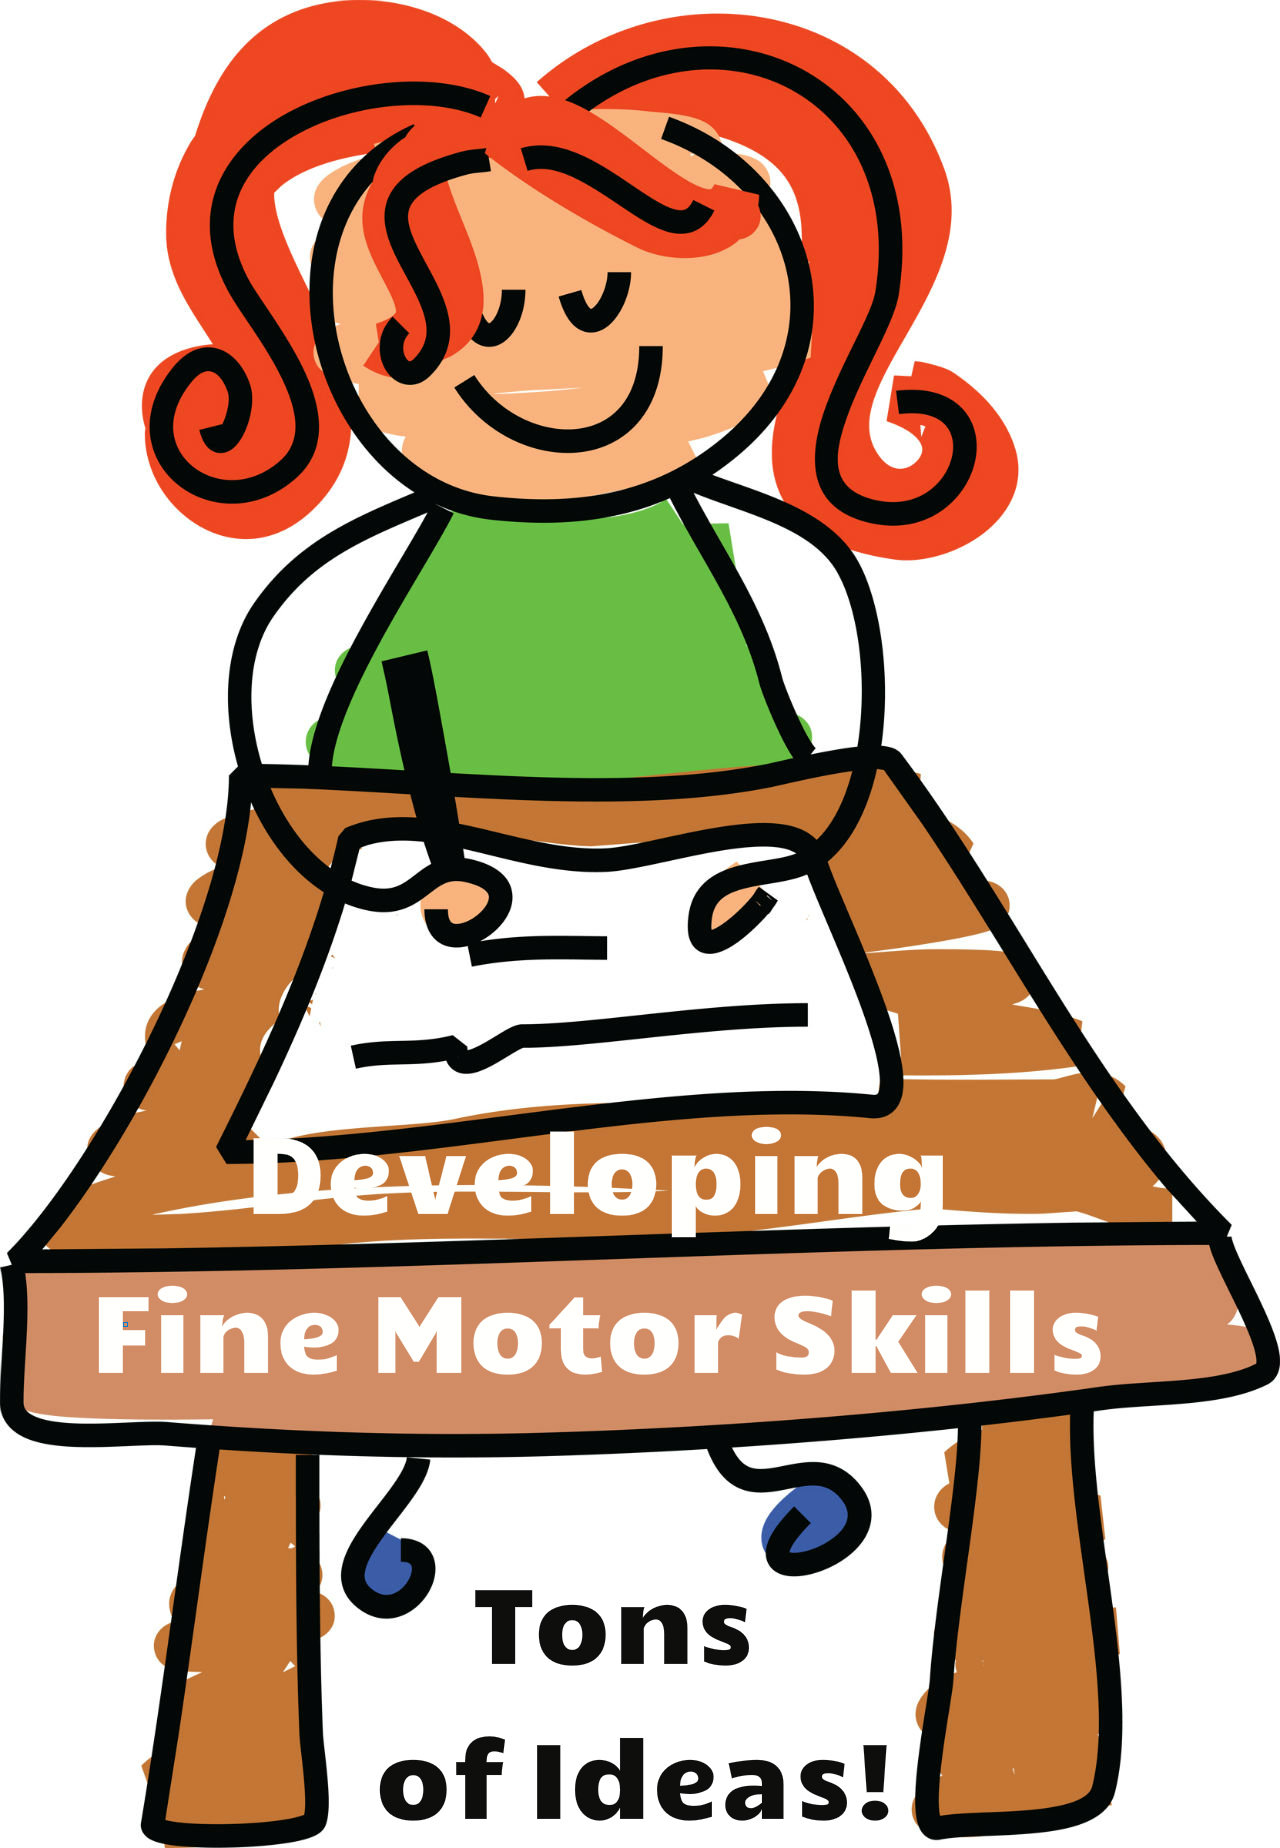 Ideas to develop fine motor skills